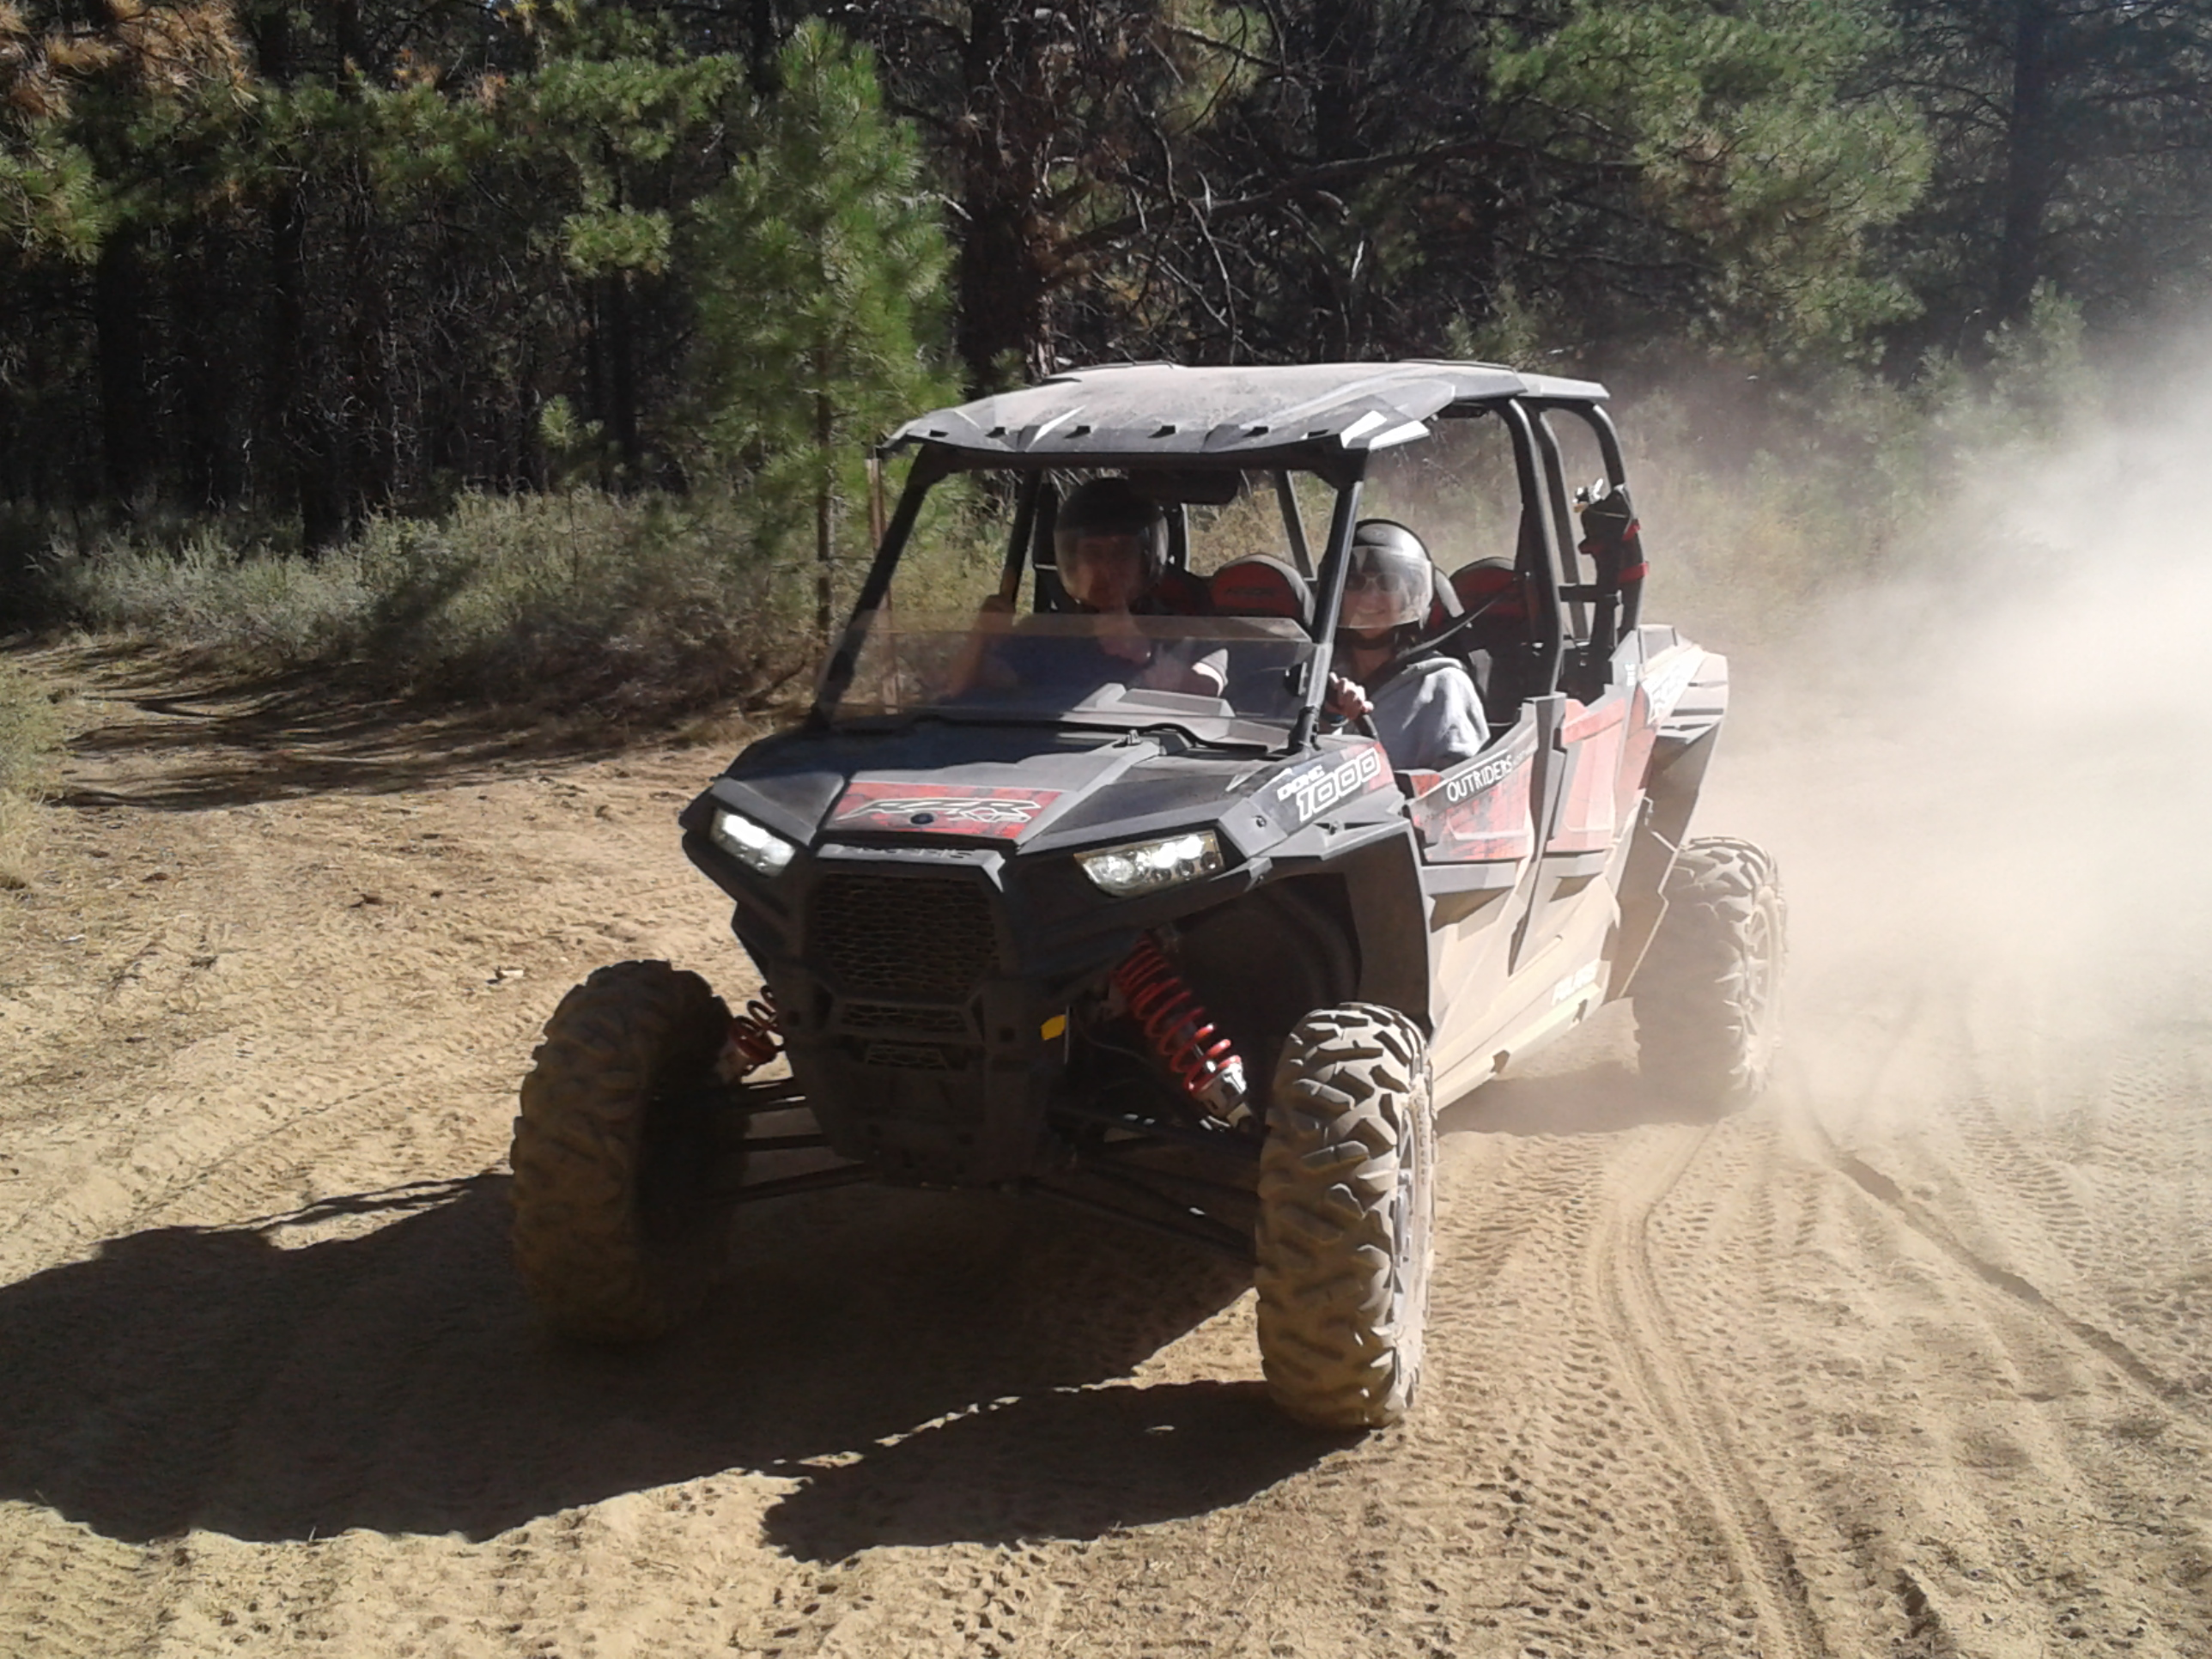 Polaris Side By Side Atv >> Off Road Tours Guided You Drive Polaris Rzr Side By Side Atvs